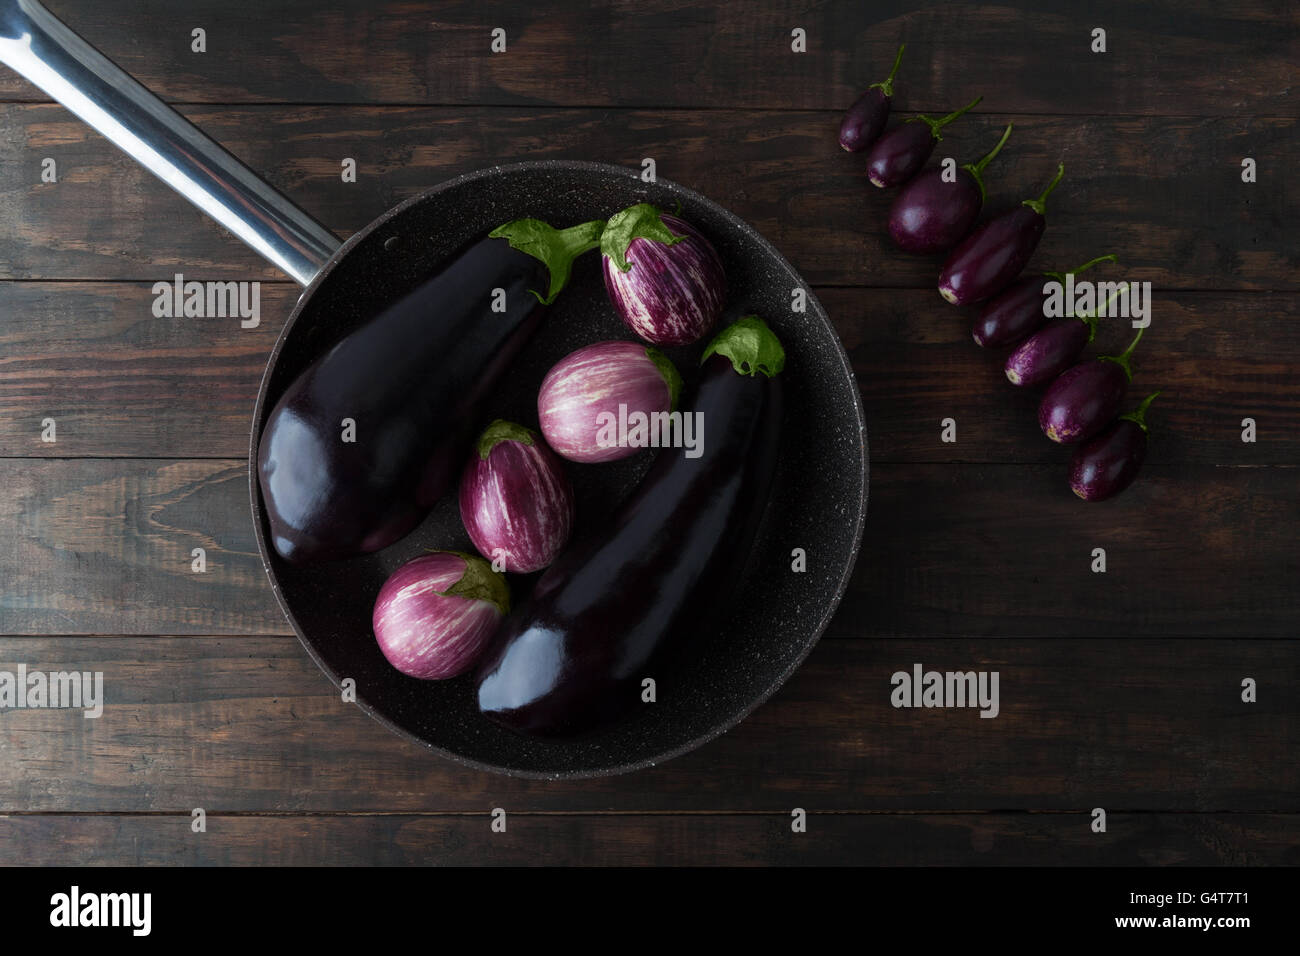 Eggplant varieties arranged on frying pan and wooden table. Top view. Stock Photo